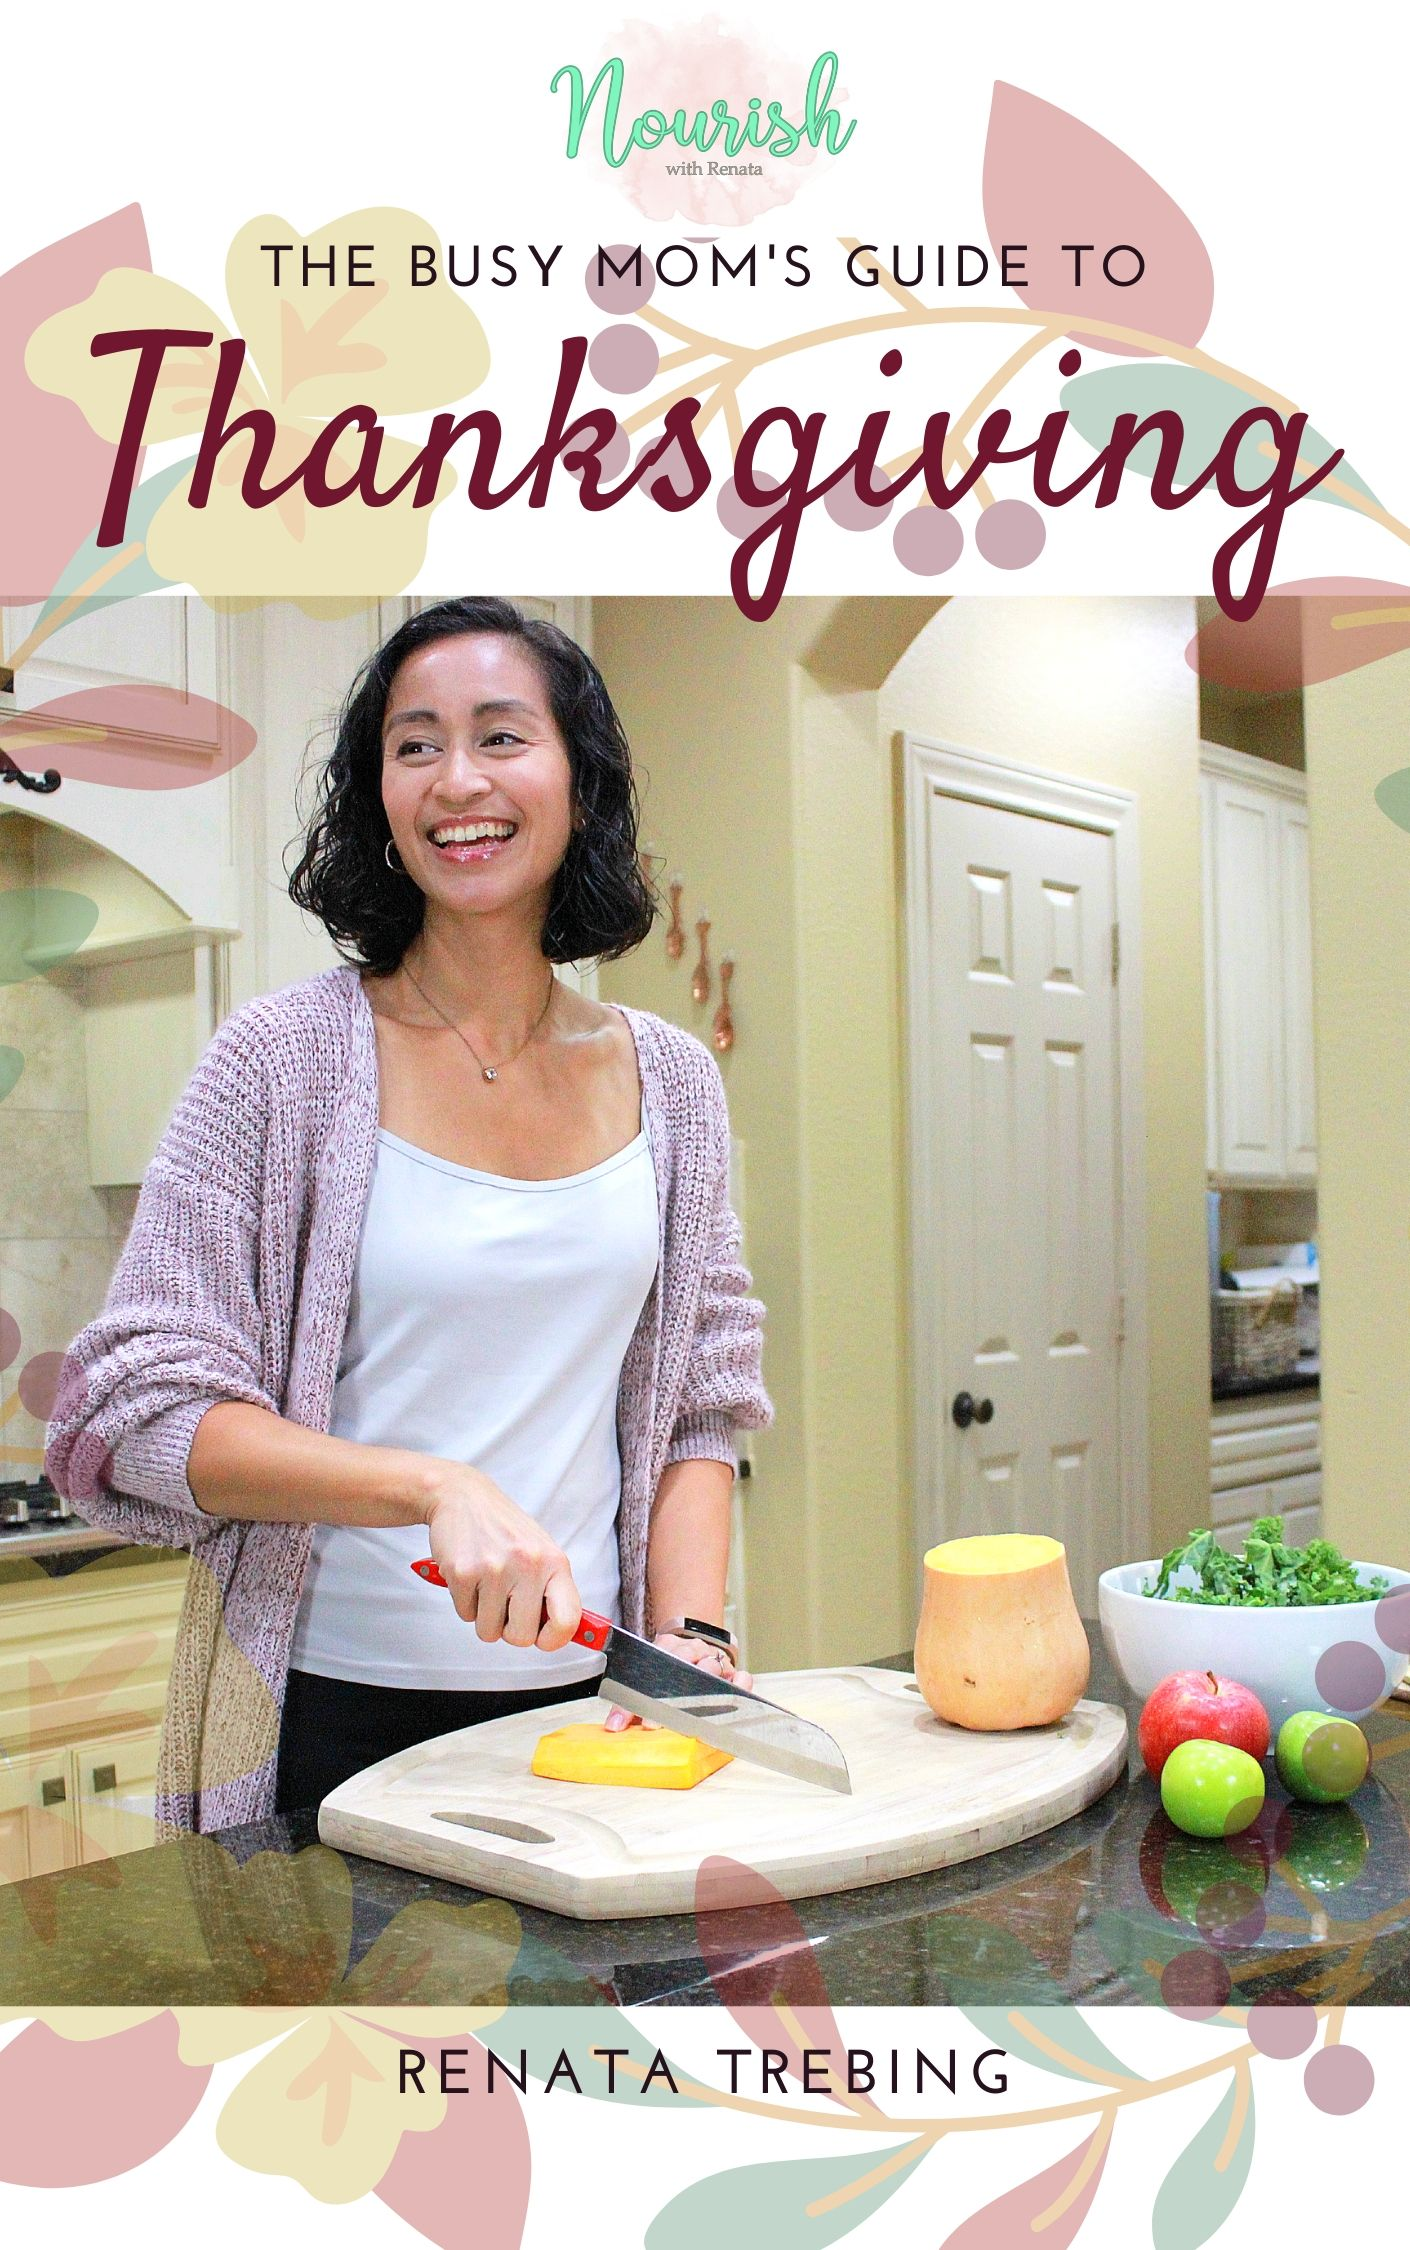 The Busy Mom's Guide to Thanksgiving